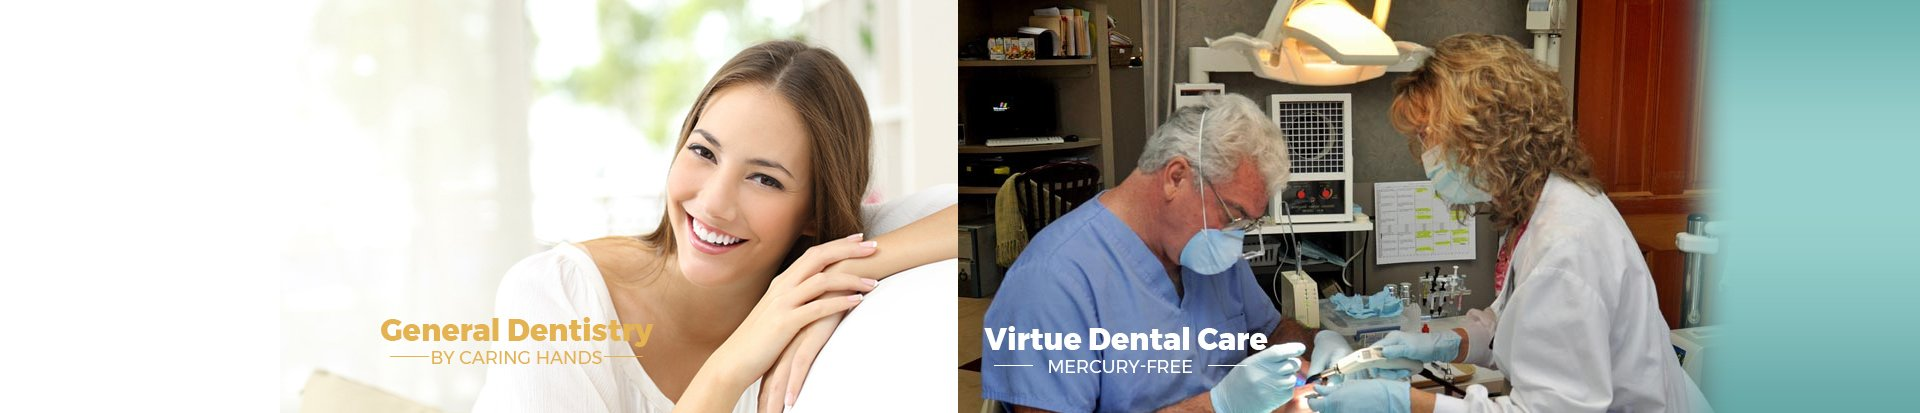 Dr. William E. Virtue DDS, NMD, at Virtue Dental Care Main Slider Mobile Banner